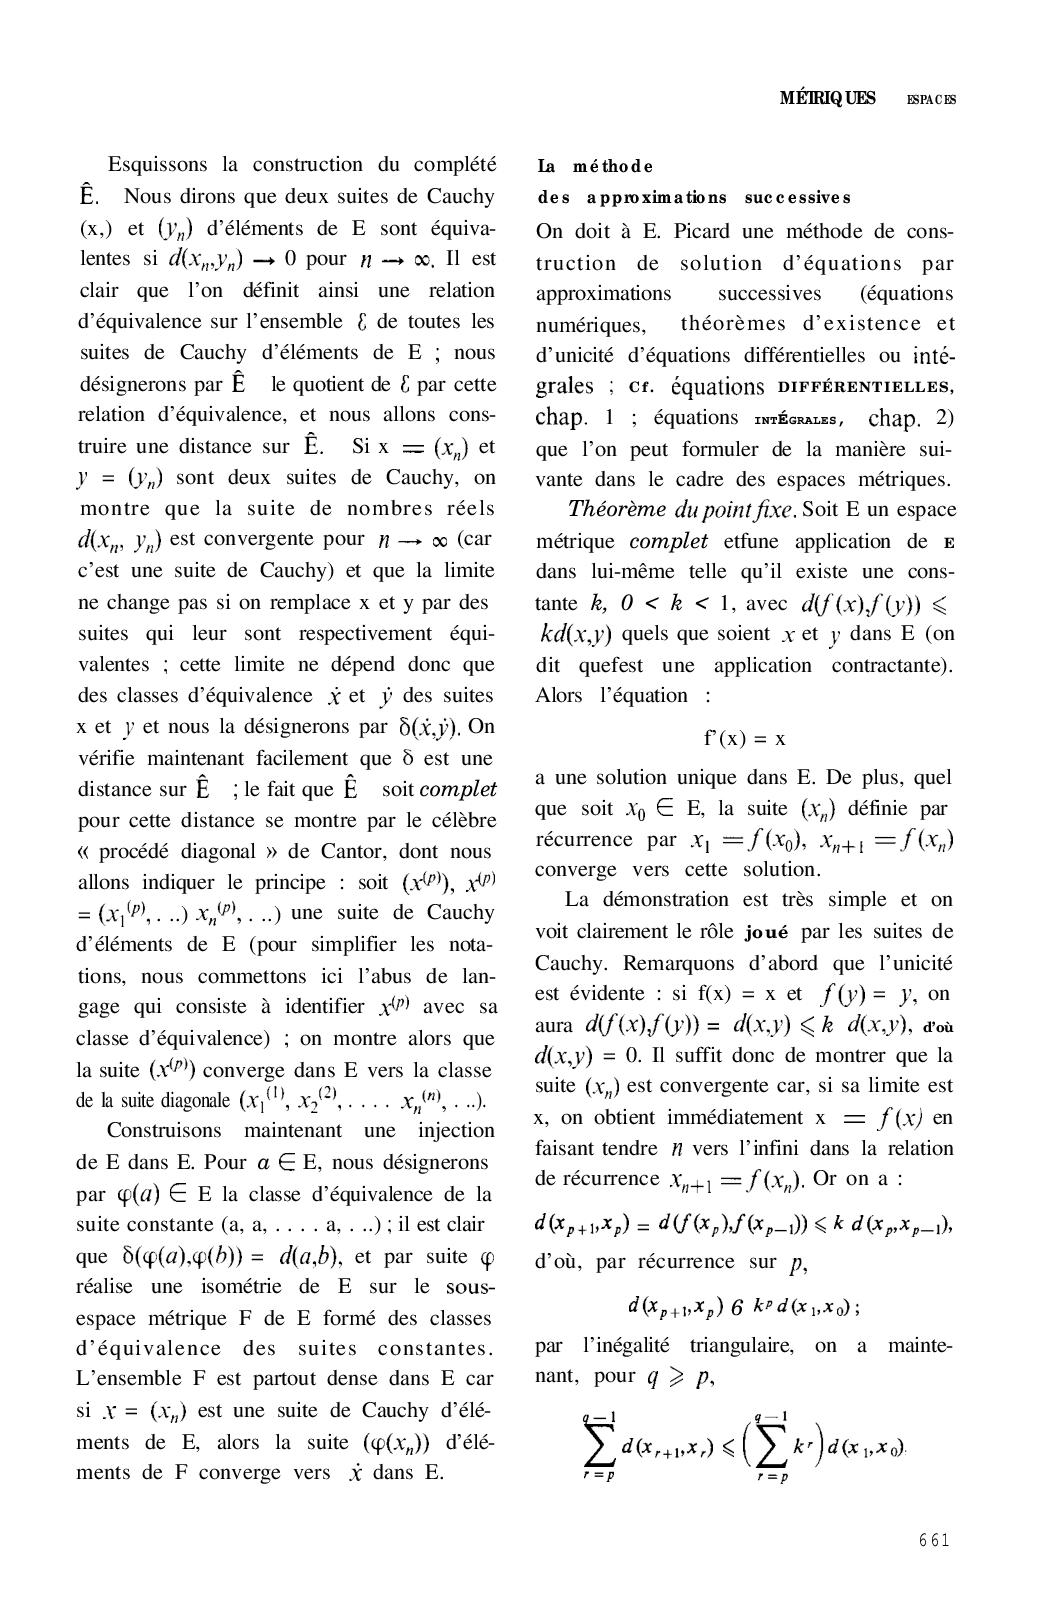 Page 659